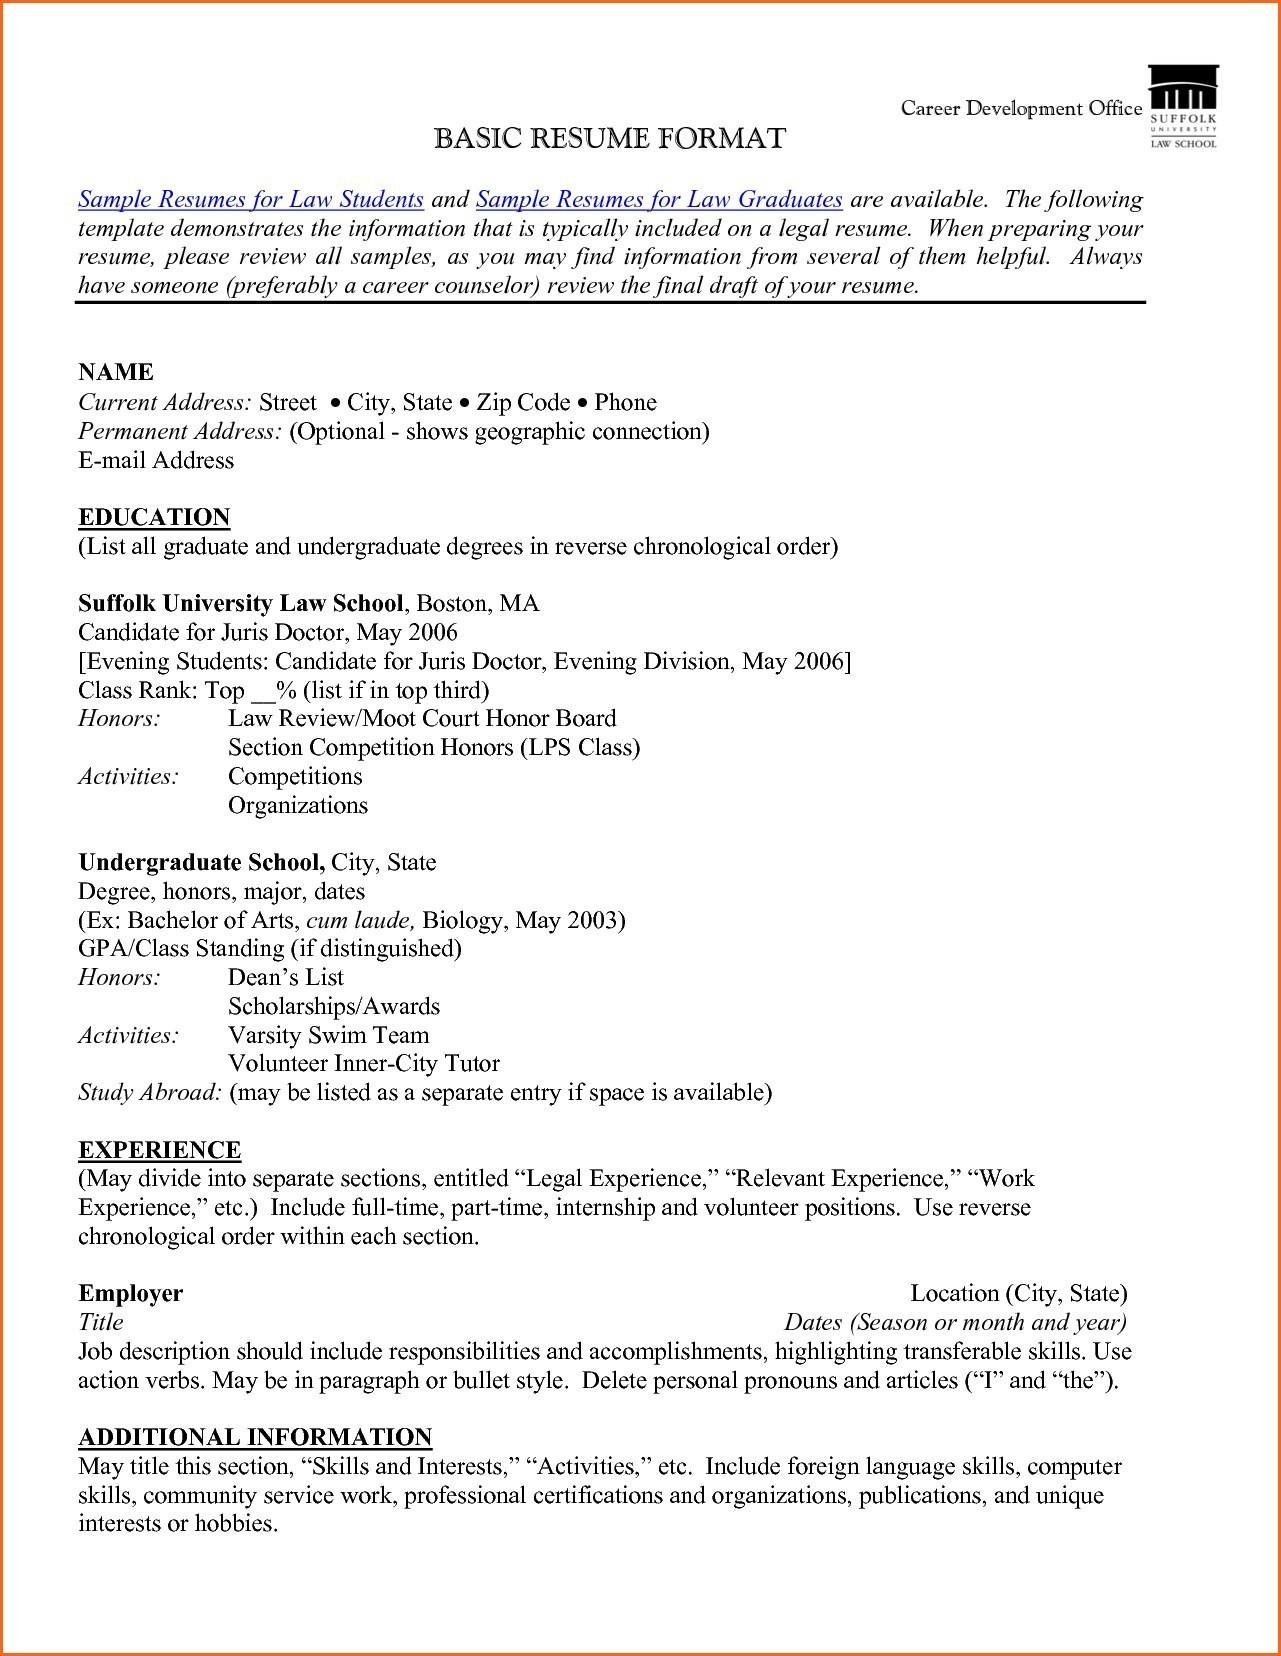 School Counselor Resume - Referral form for Counseling Services Lovely 25 Luxury Counselor